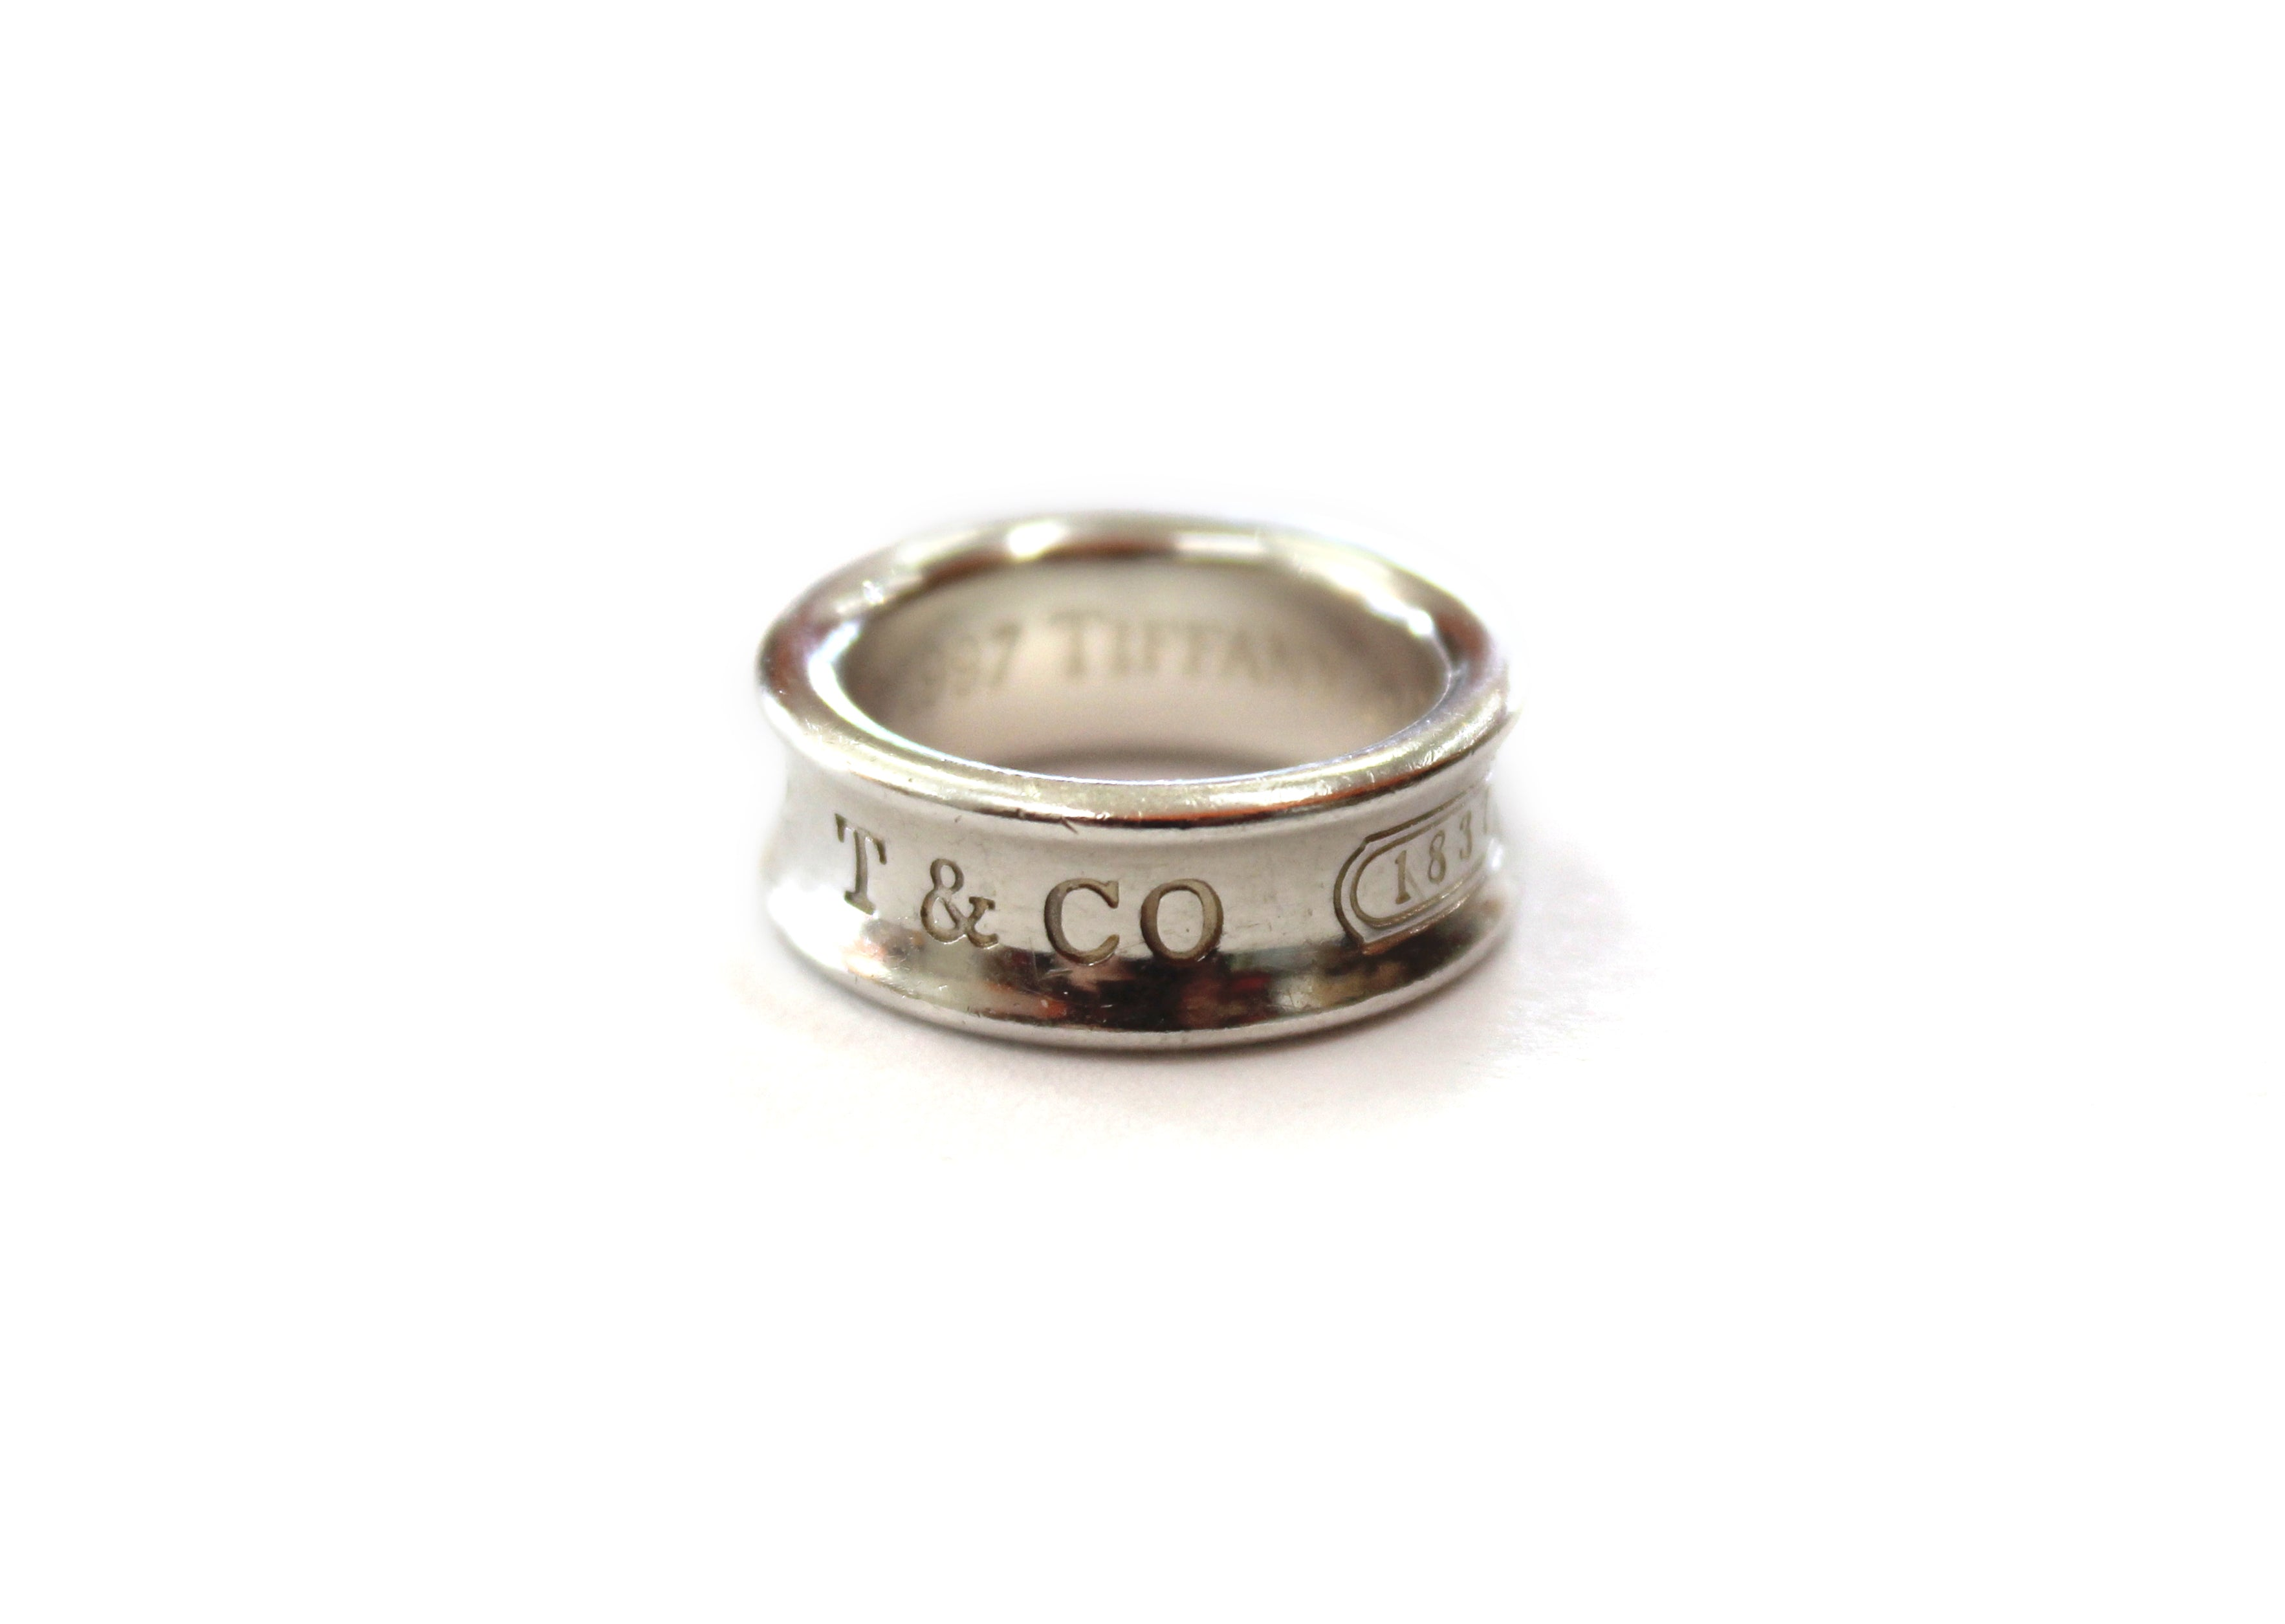 Authentic Tiffany & Co. Sterling Silver 1837 Medium Ring Size 3.5